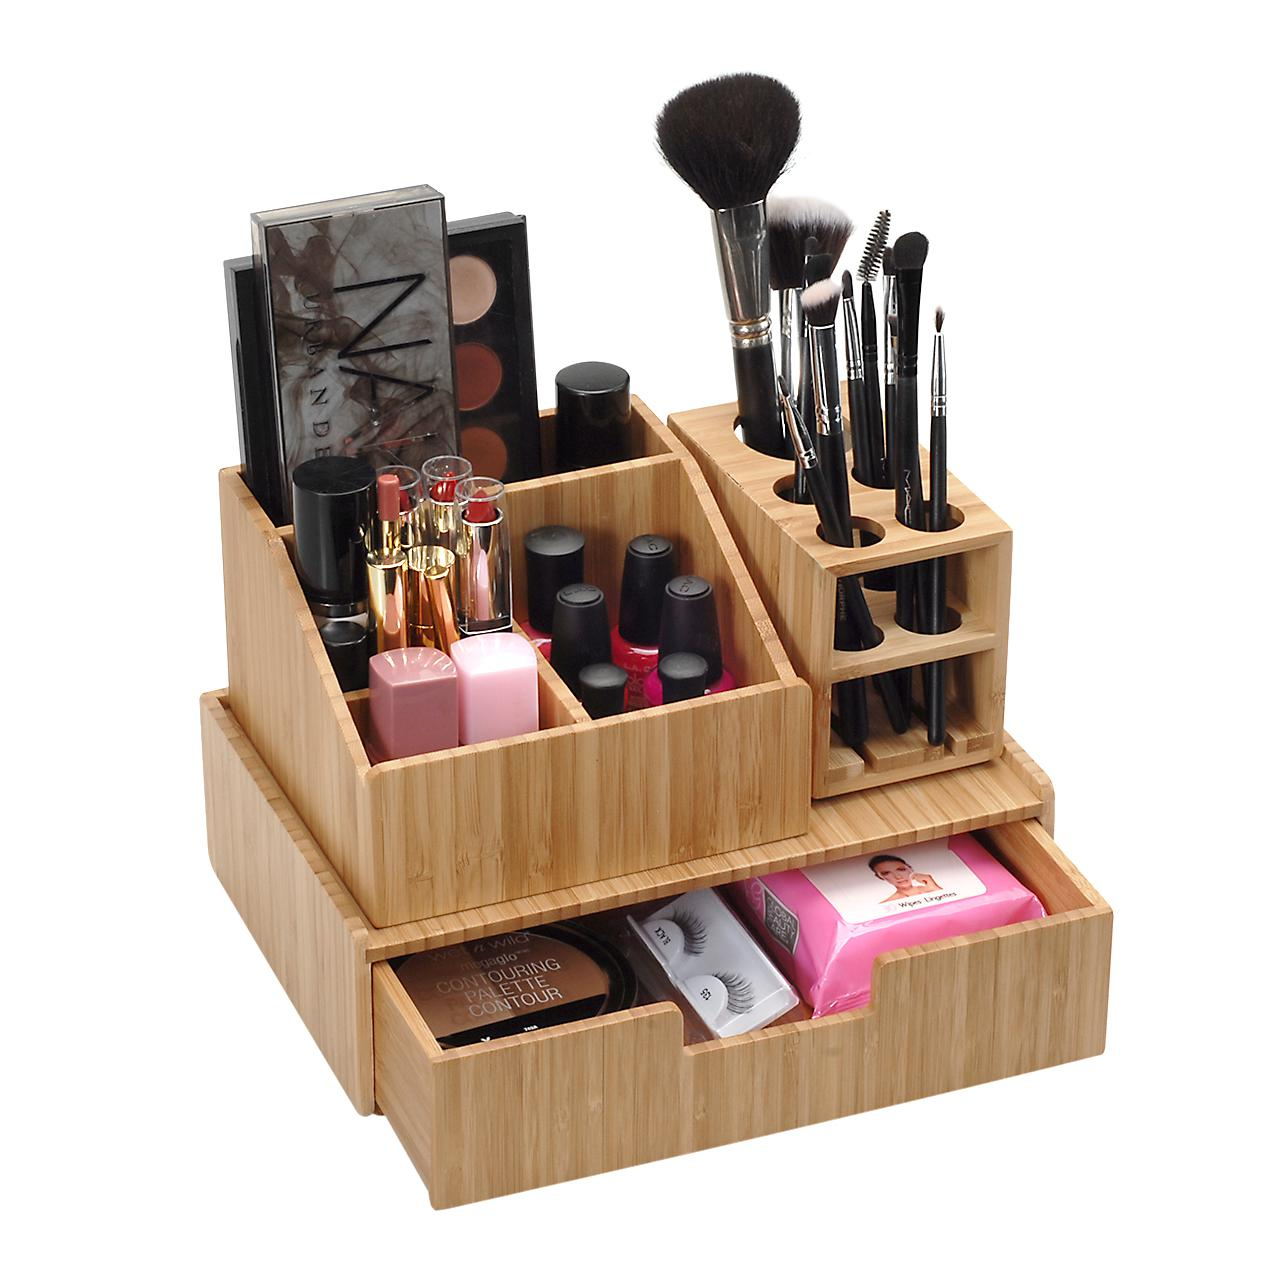 Bamboo Countertop Makeup Organizers with Drawers and Makeup Brush Holder for Storing Beauty Products, Cosmetics, Jewelry, or Toiletries